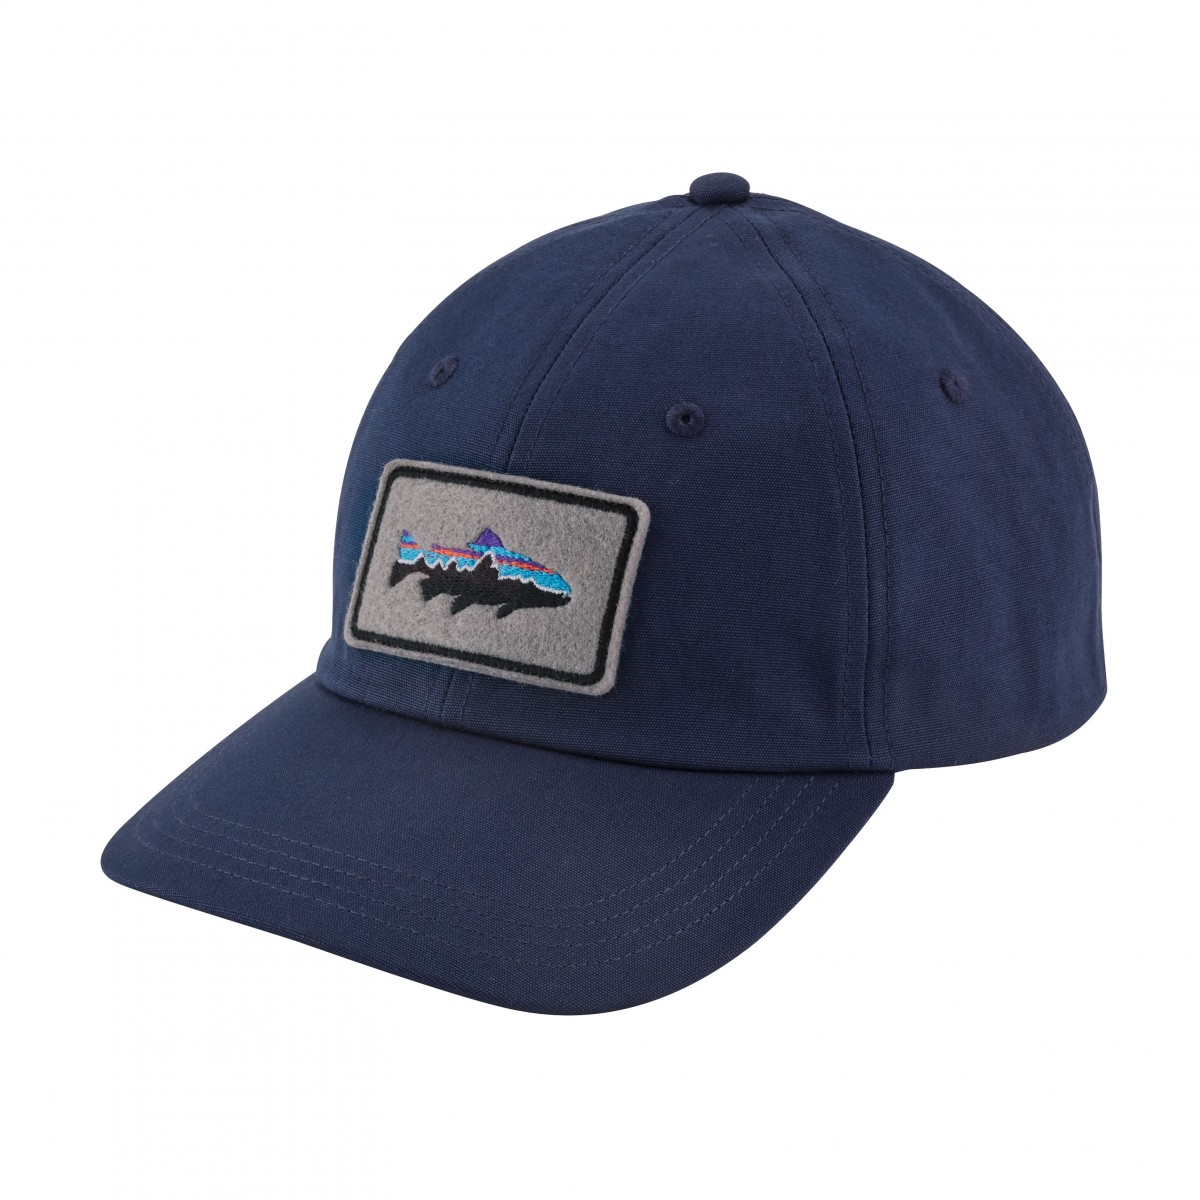 Patagonia Fitz Roy Trout Patch Hat 83f4a799d0c5